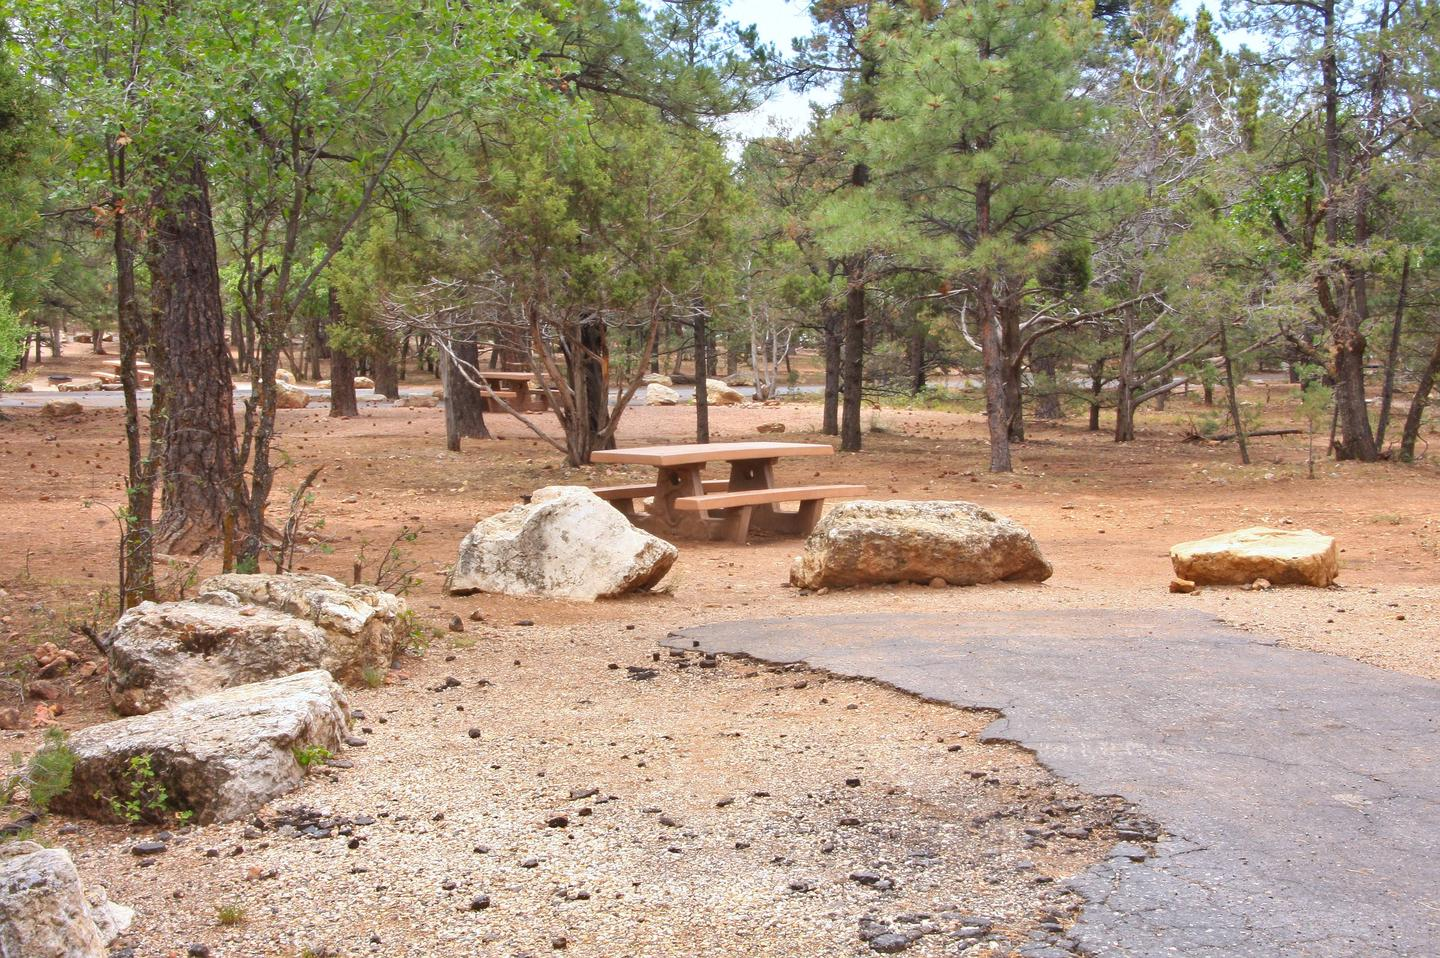 Picnic table and parking spot, Mather Campground